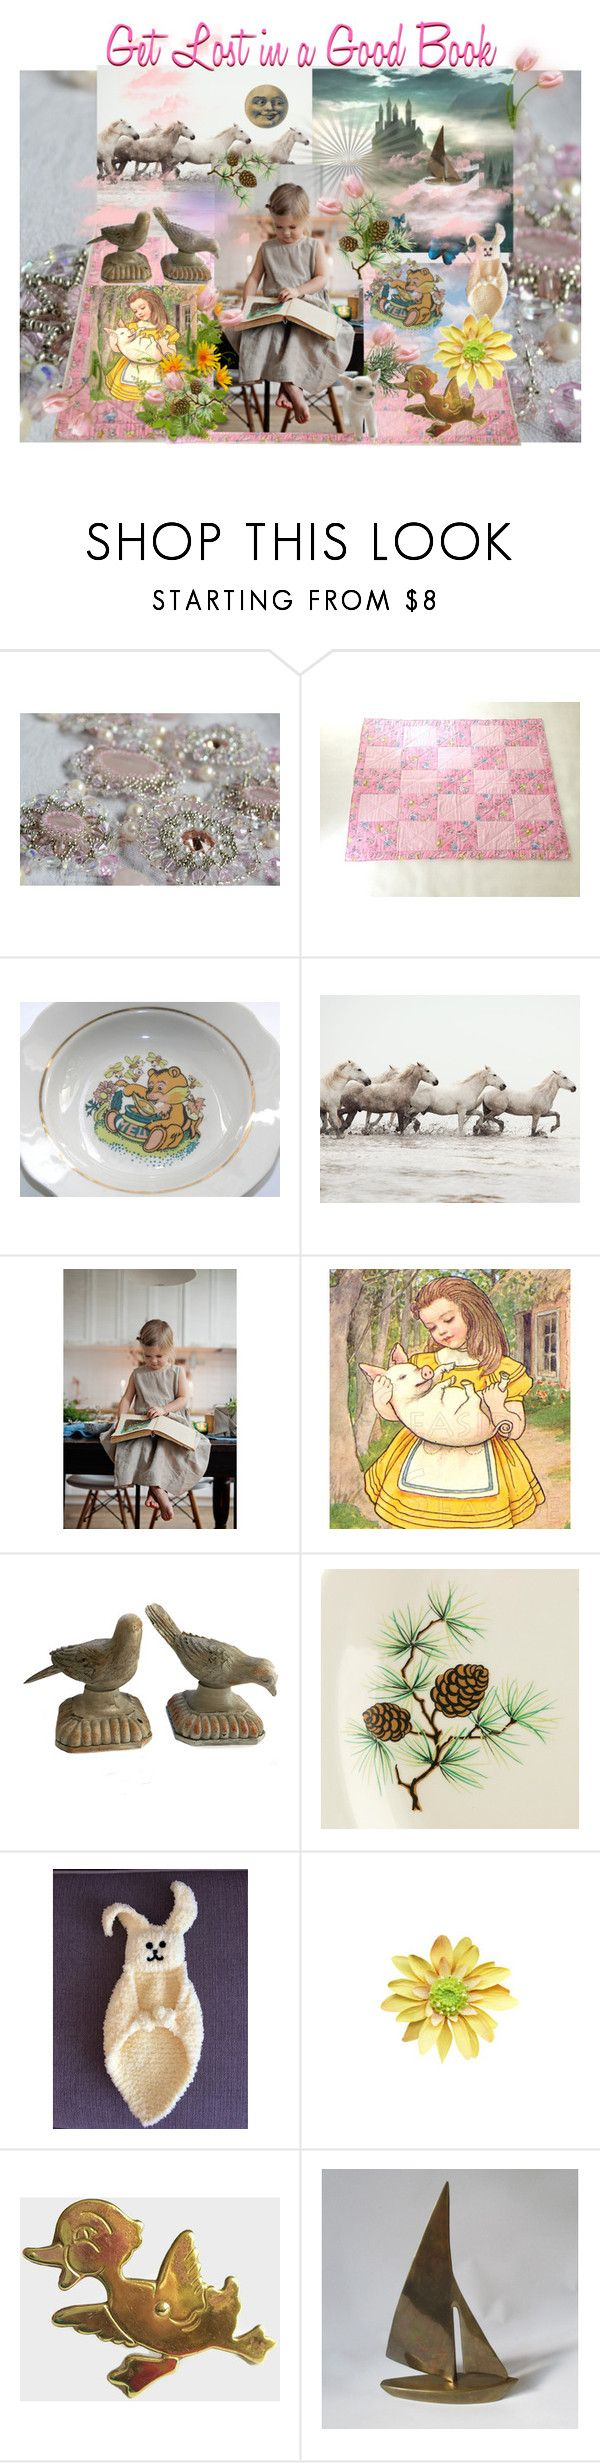 """Get Lost in a Good Book"" by seasidecollectibles ❤ liked on Polyvore featuring WALL, Universal, American Dakota, Dollhouse and vintage"